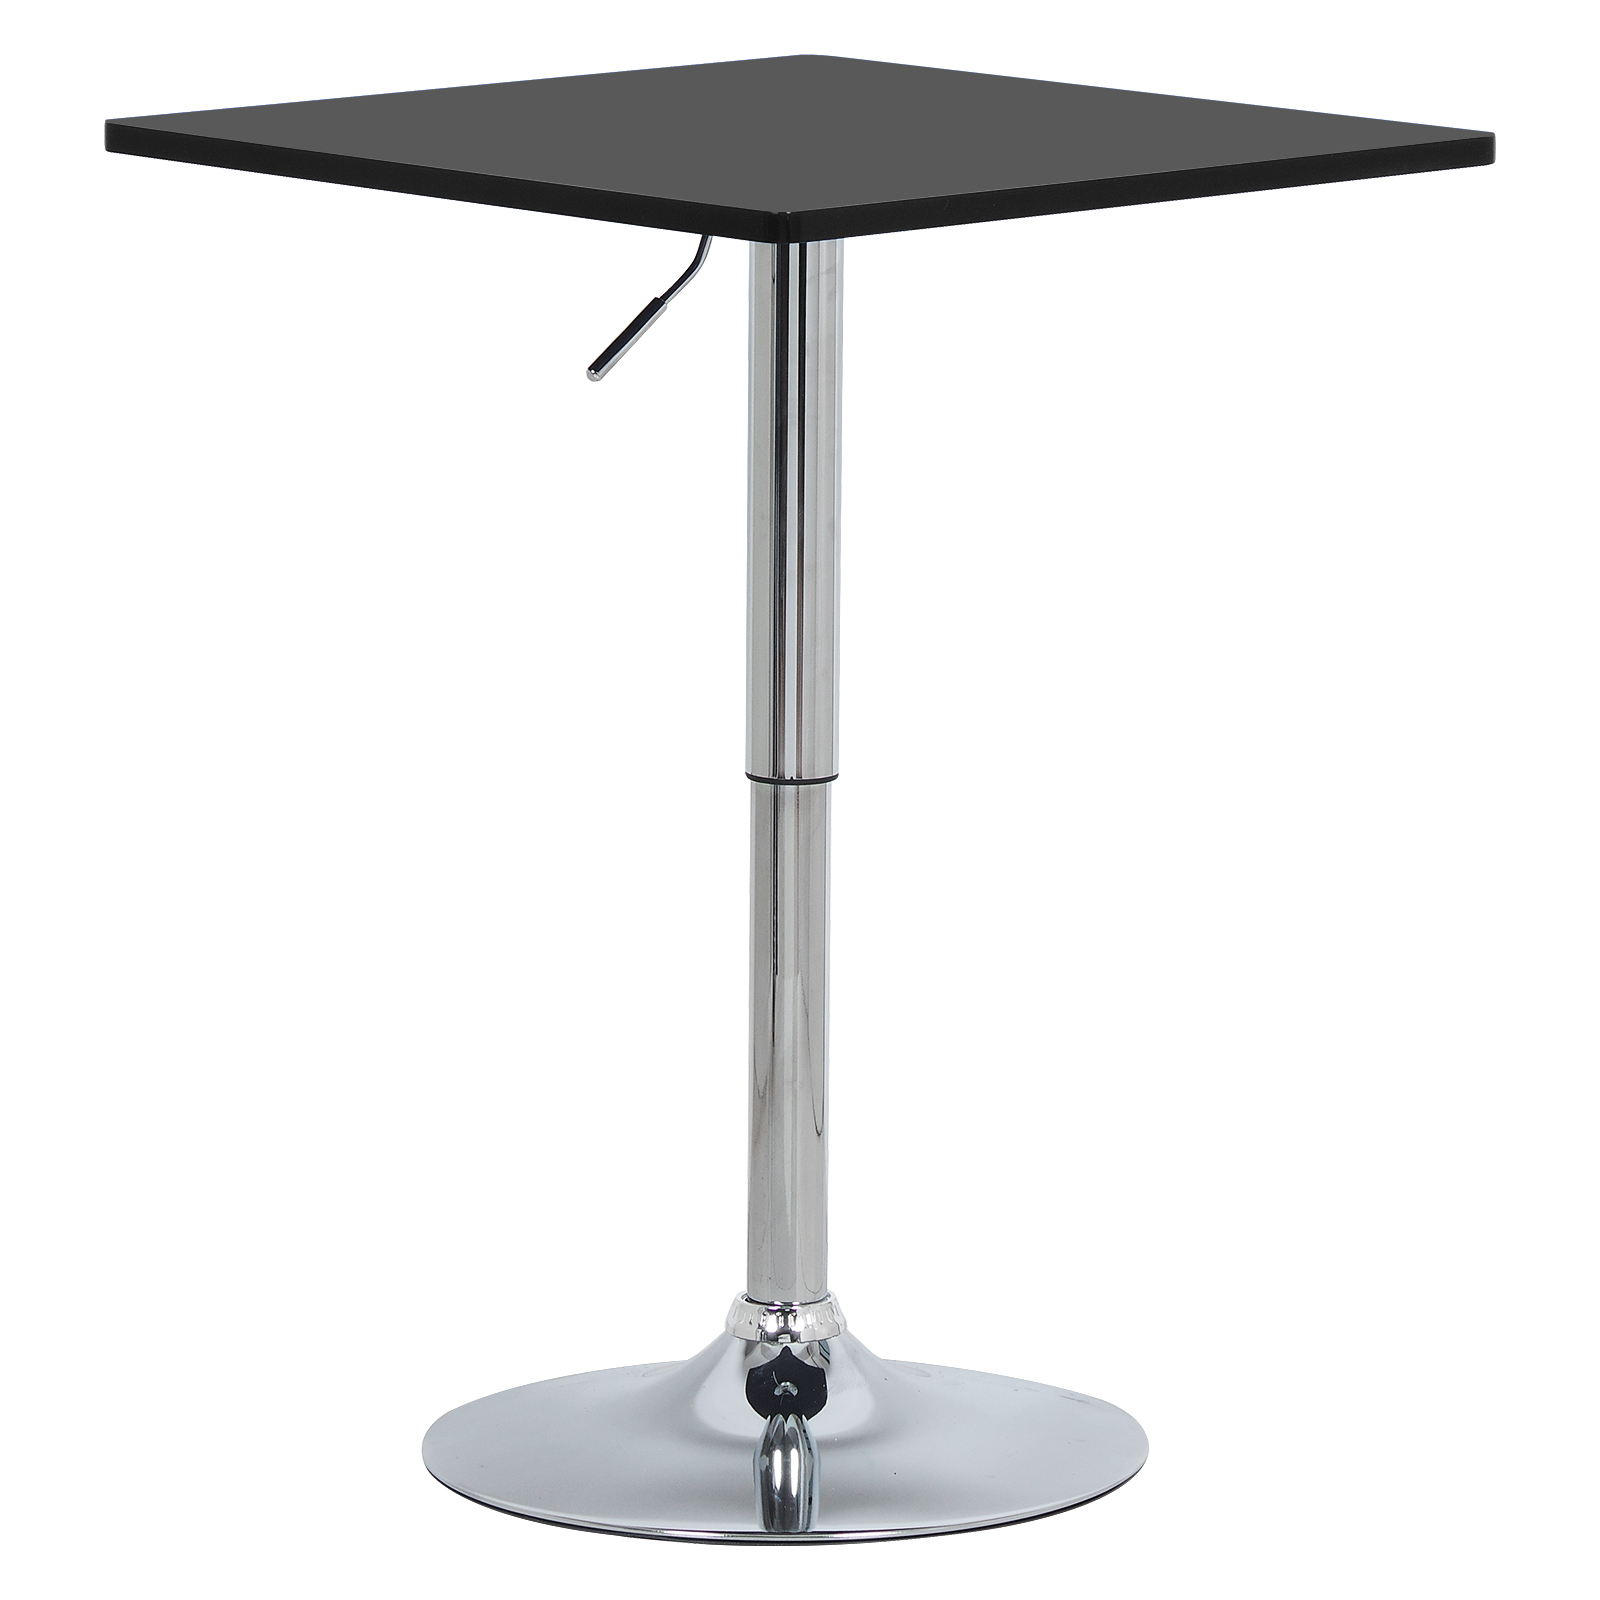 1PC MDF Bar Table Height Adjustable 360 Degree Swivel Bistro Table Party Table for Kitchen Living Room Bar Furniture